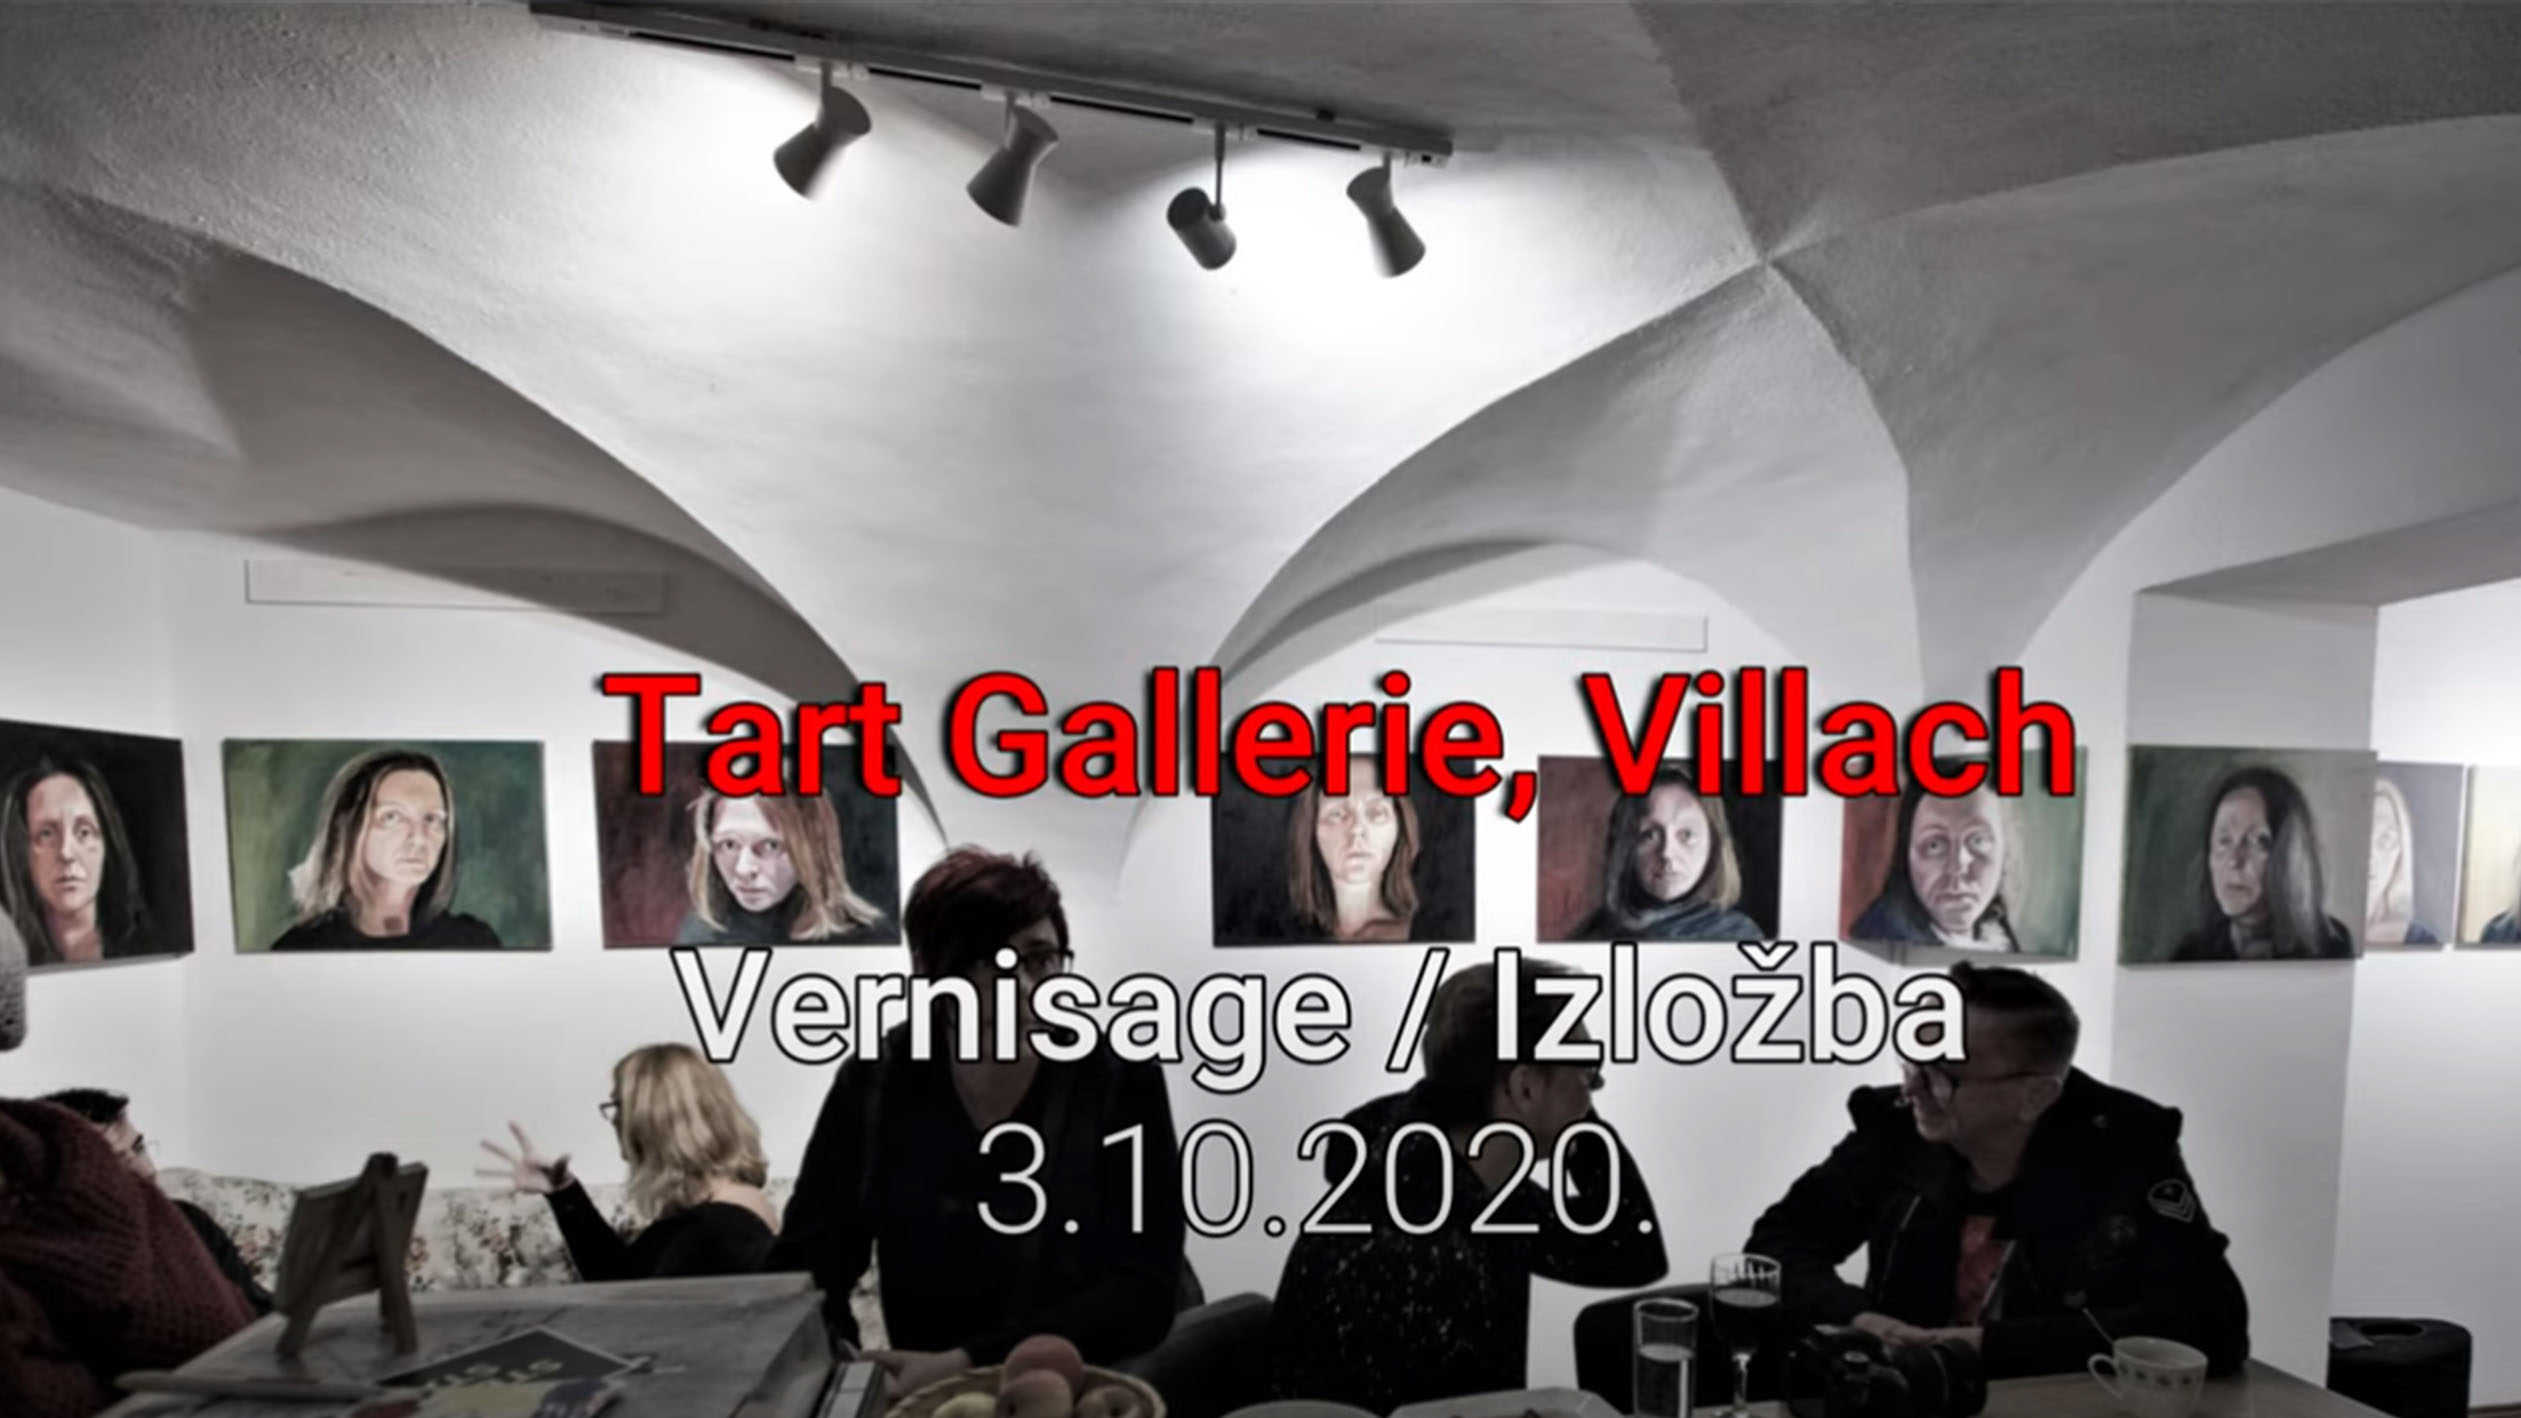 tart galleries villach 3